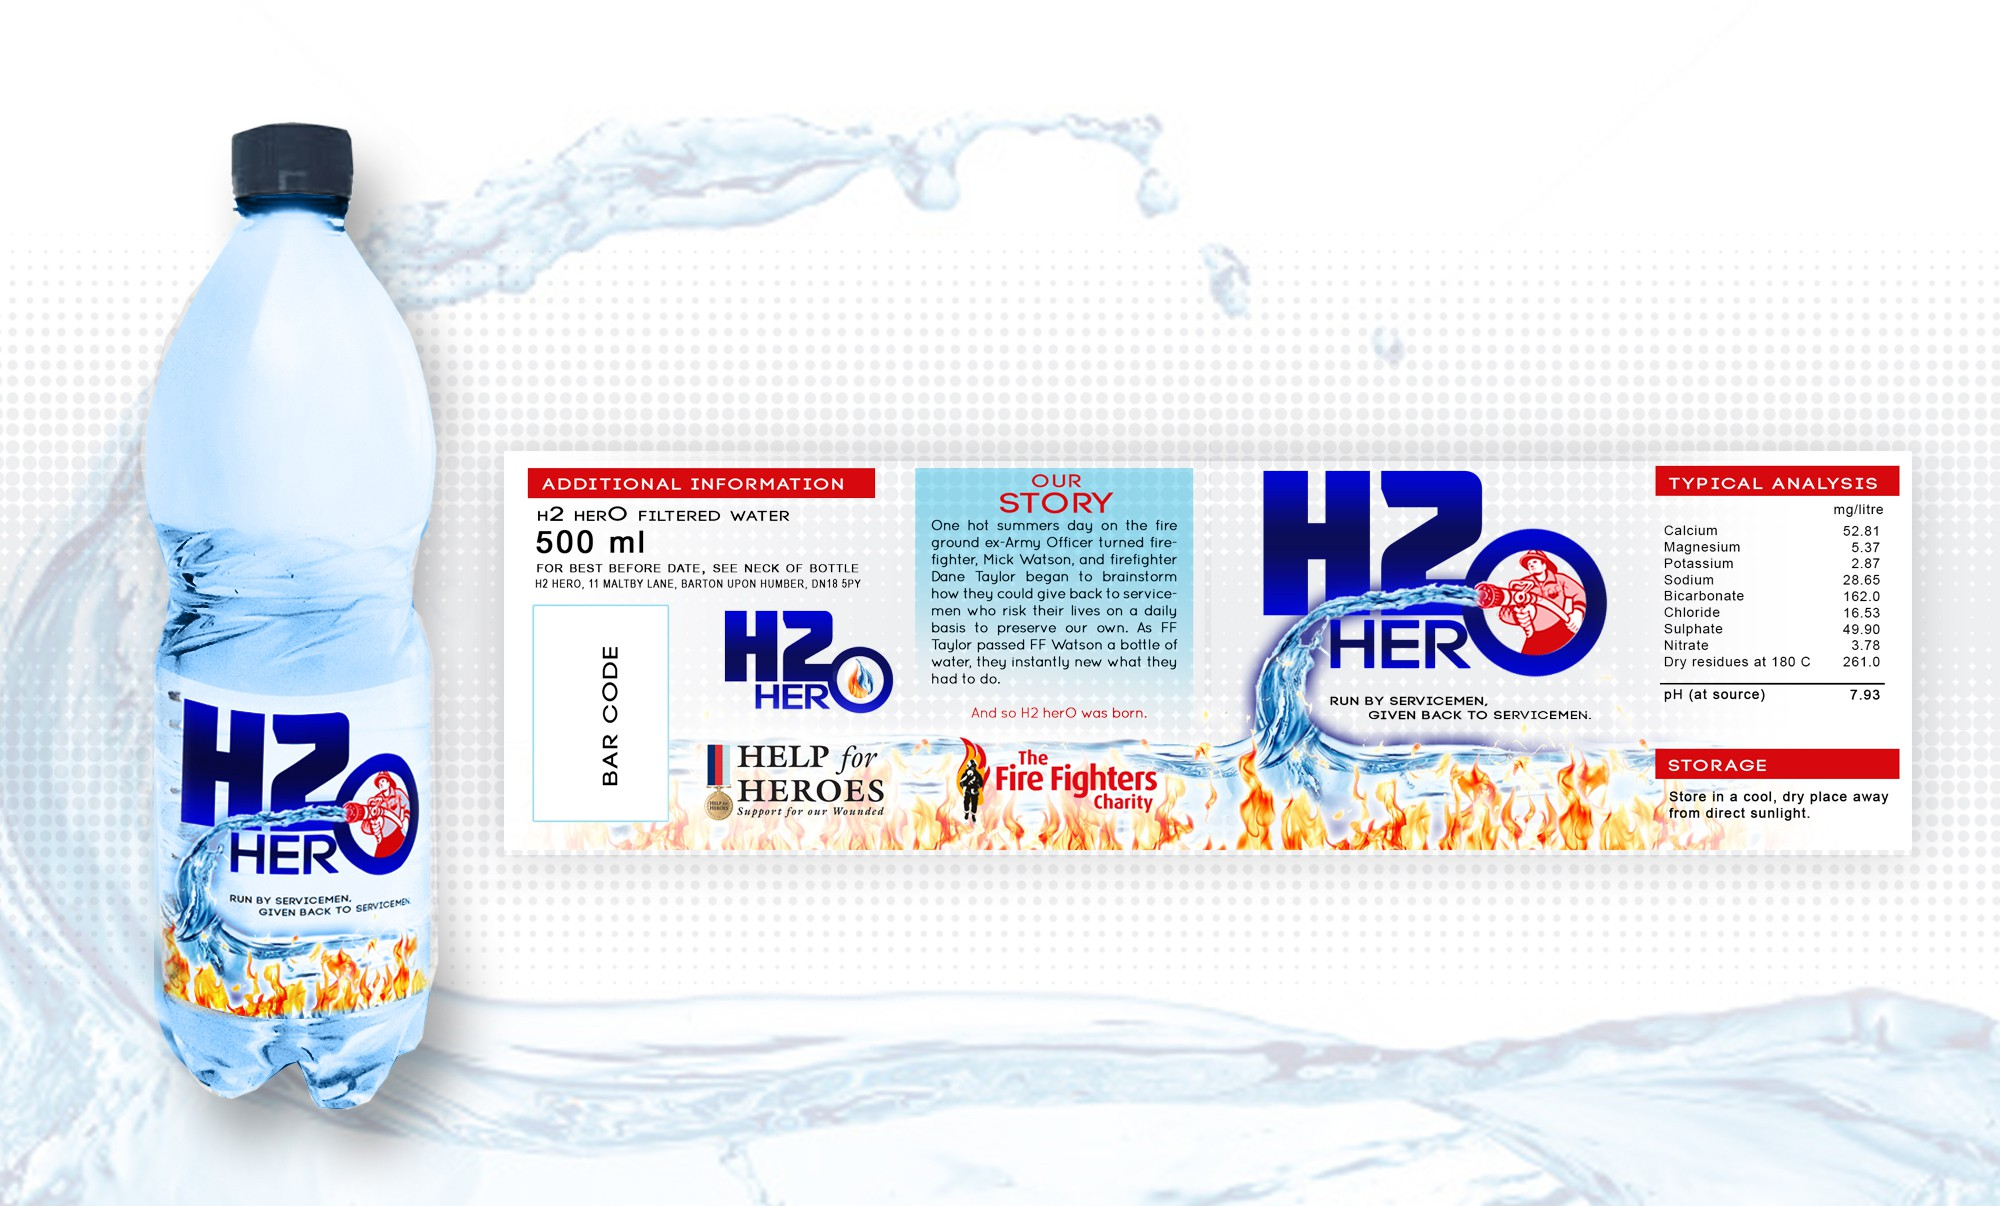 Create a capturing energetic and heroic design bottled water label that captures charitable minds